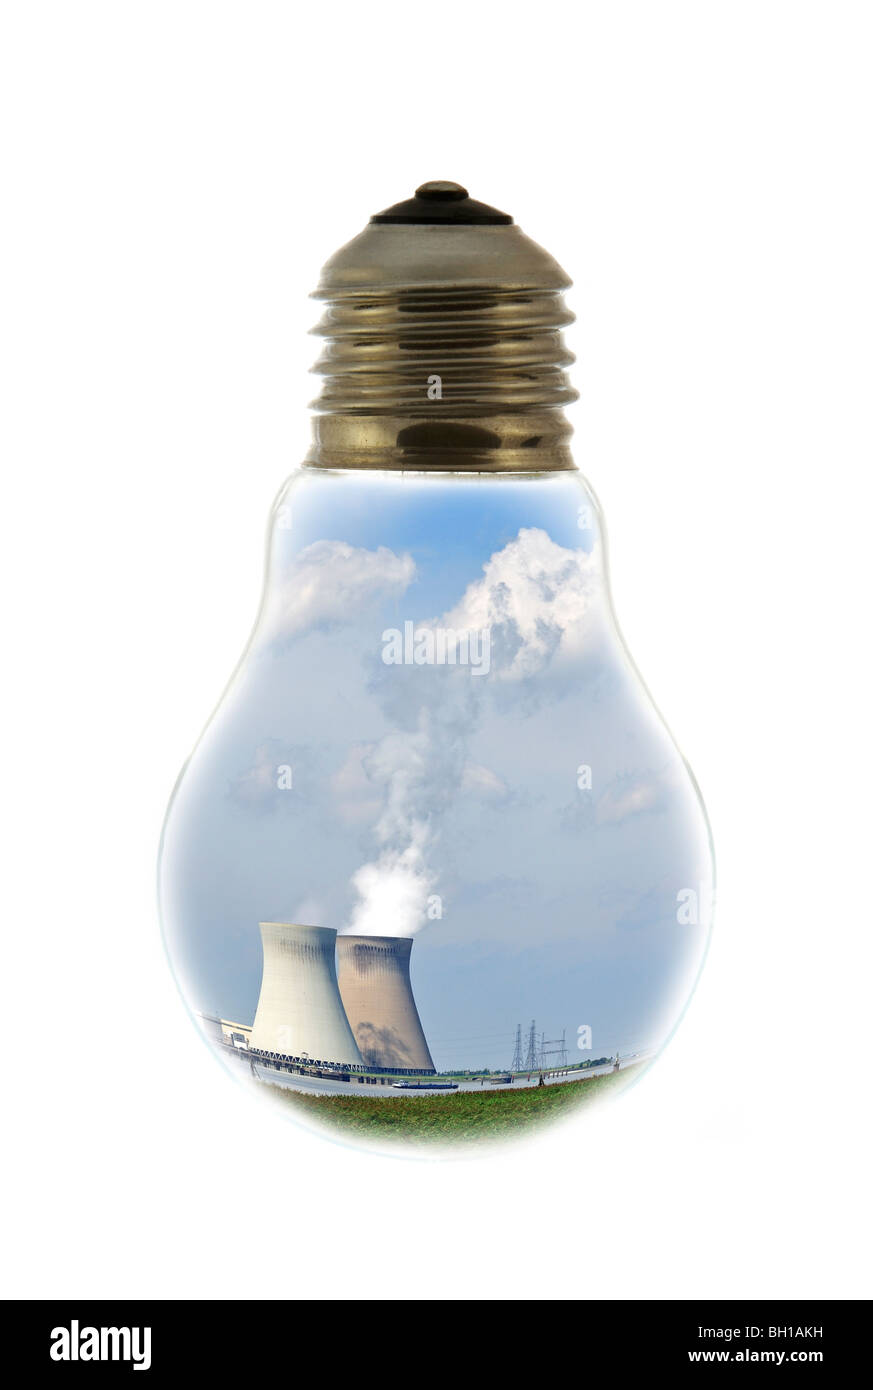 Cooling towers of nuclear power plant inside incandescent lamp / bulb against white background - Stock Image